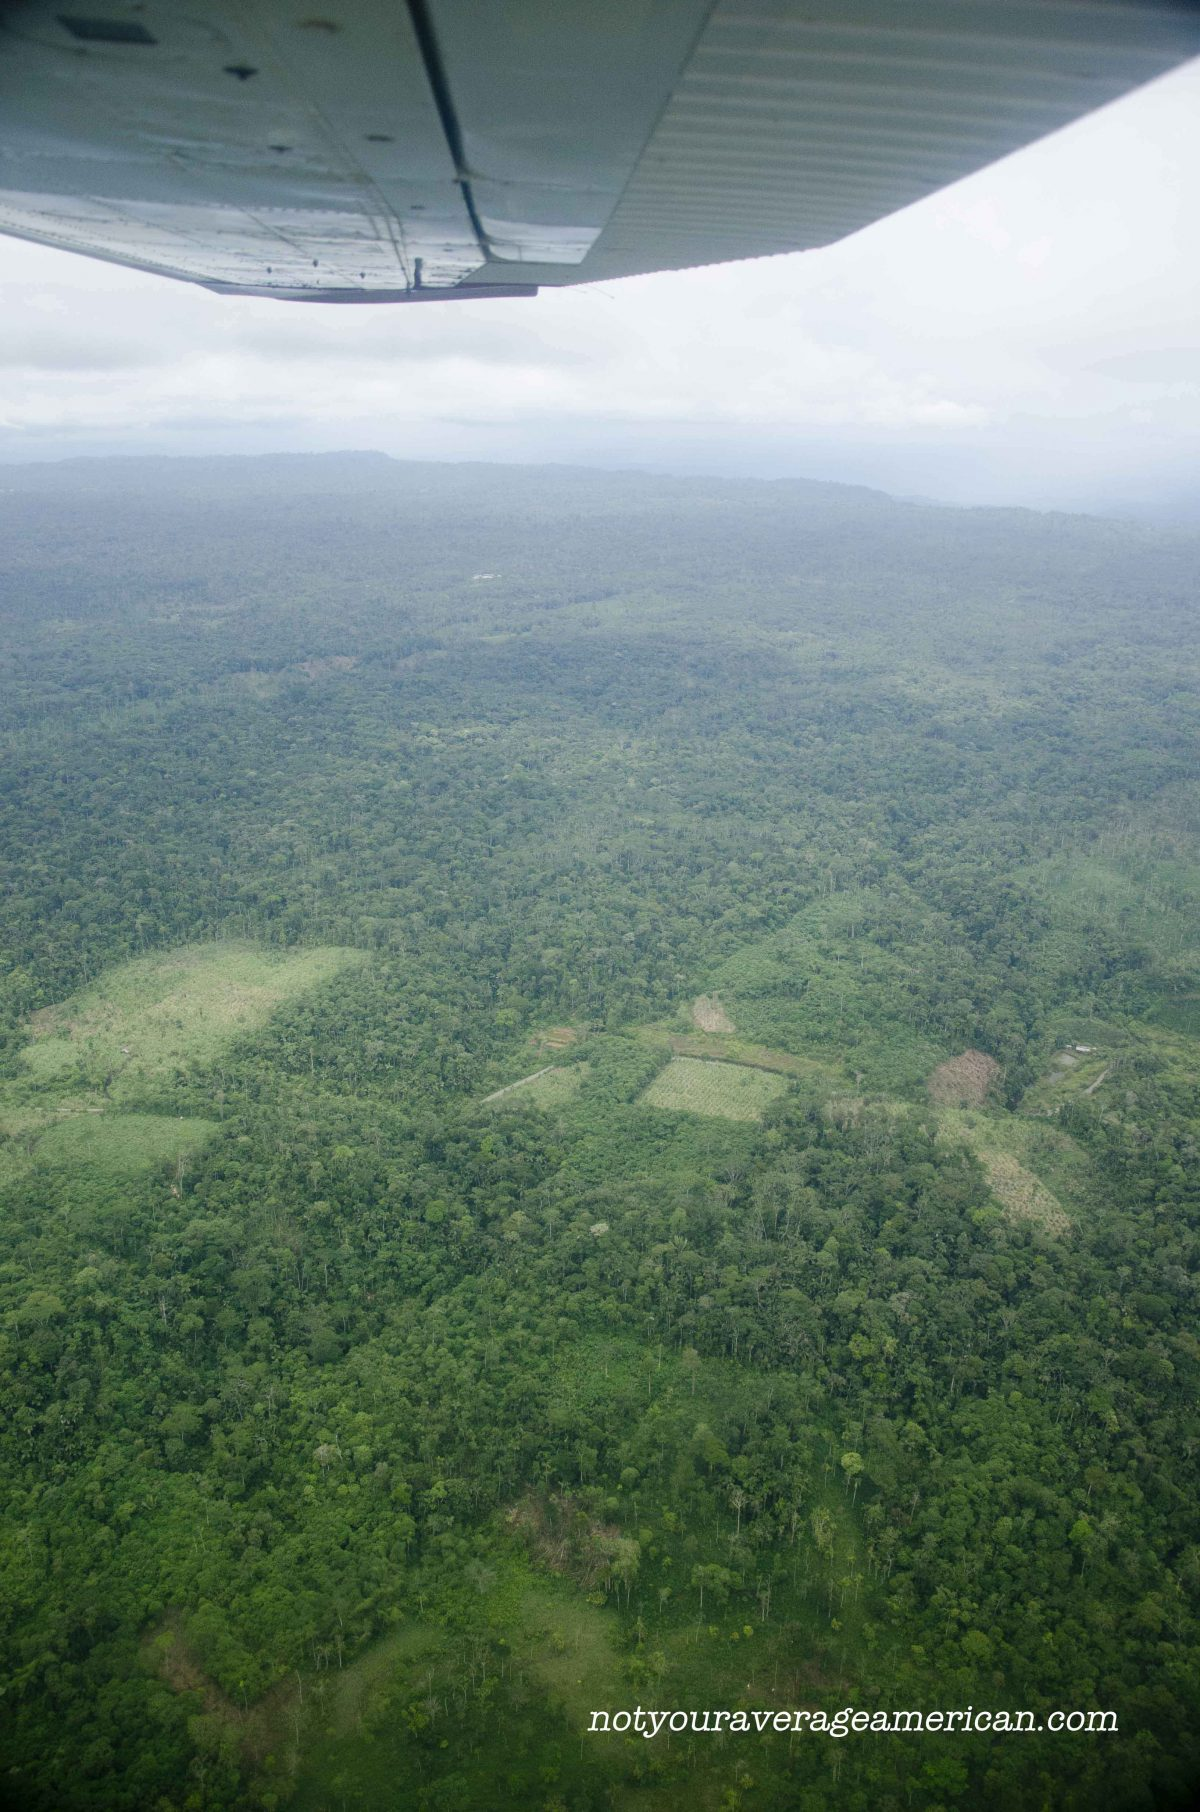 Leaving Shell for the jungle by plane allows us to see the changes taking place, Huaroani Lodge